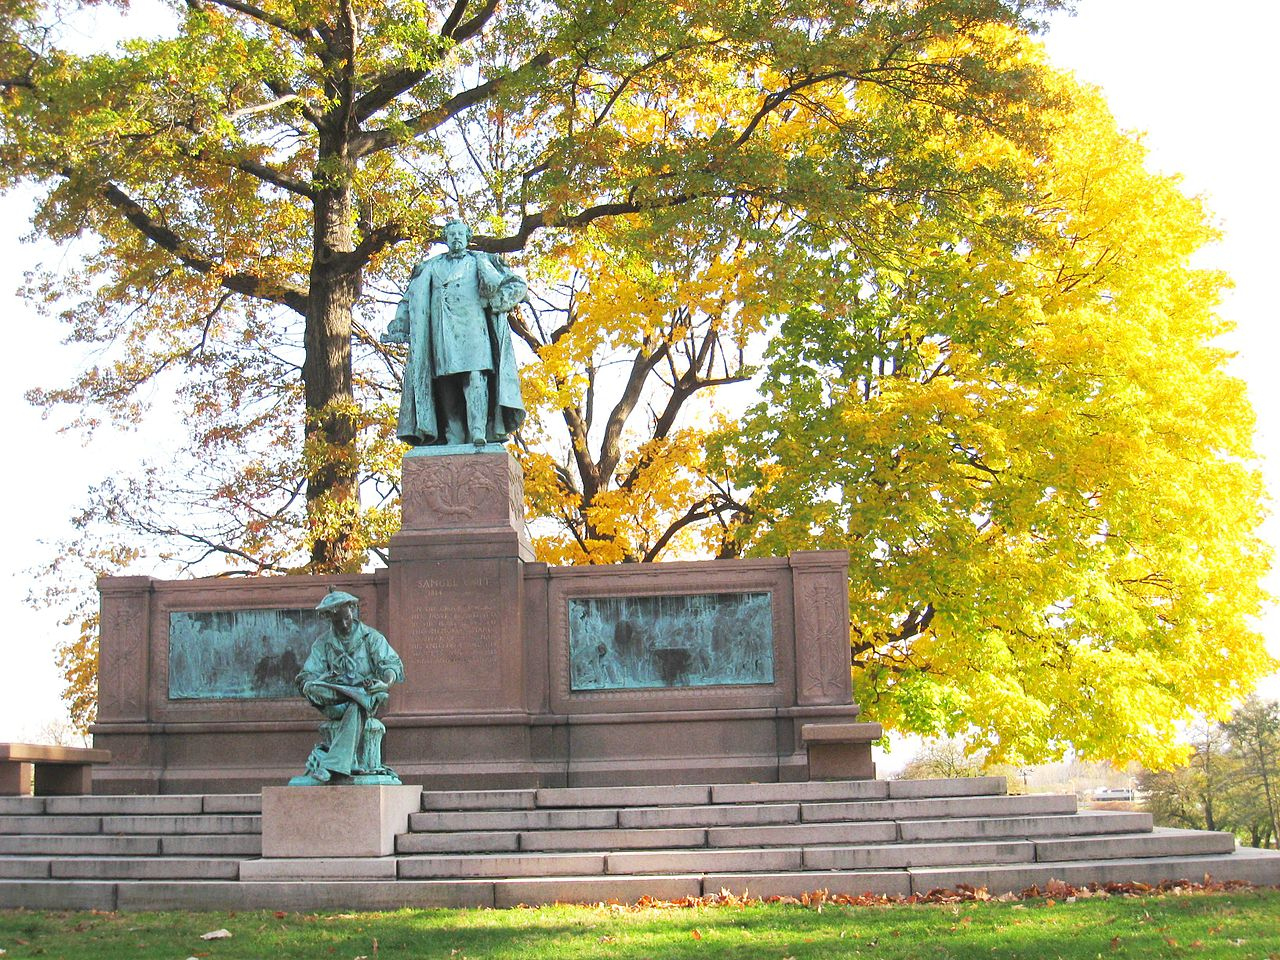 The Samuel Colt Memorial on the grounds of Colt Park in Hartford.